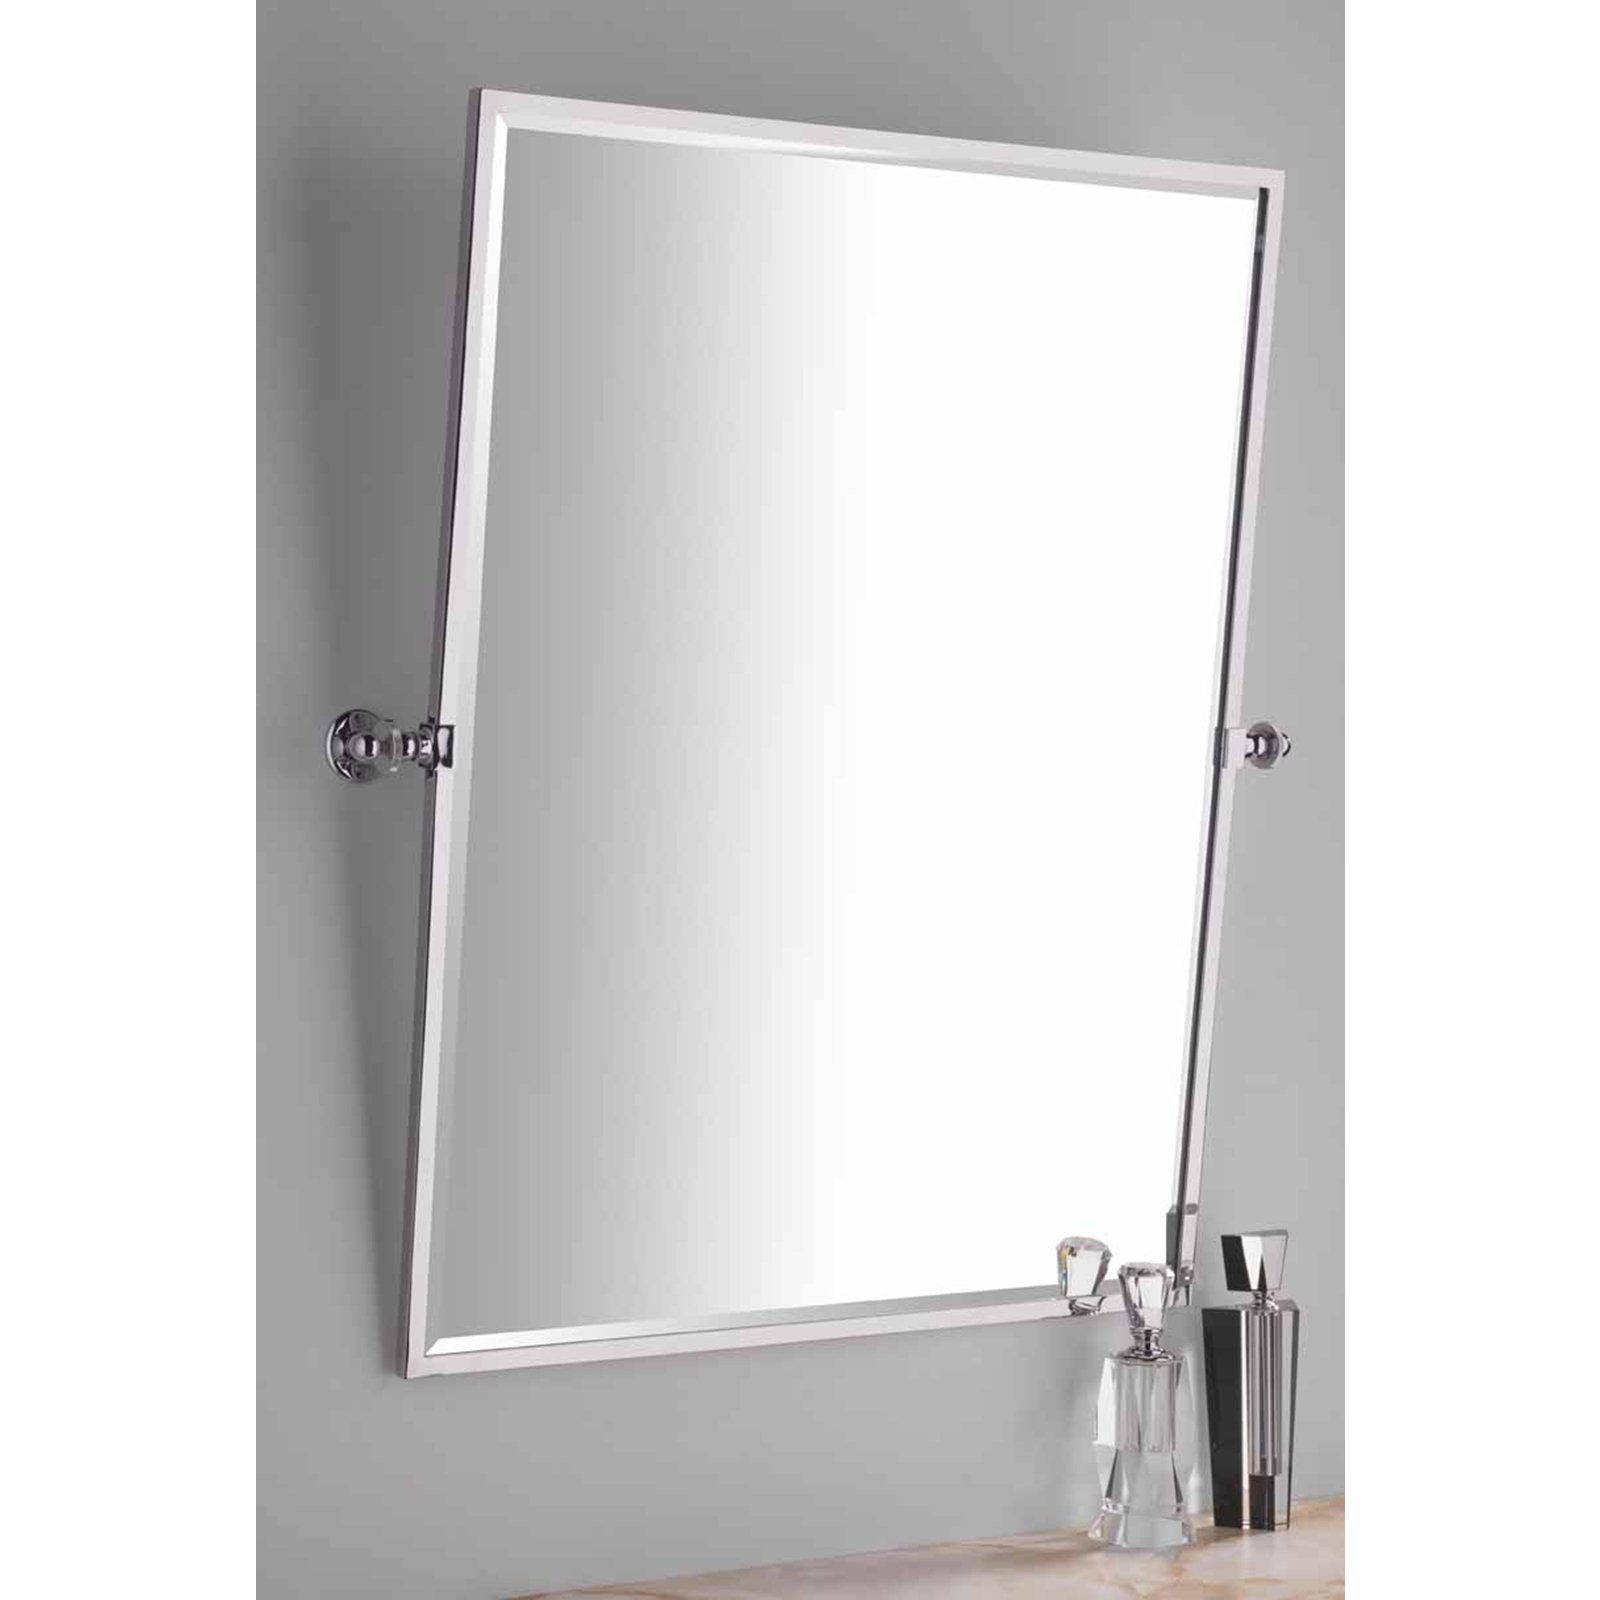 Permalink to Rectangle Chrome Bathroom Mirror